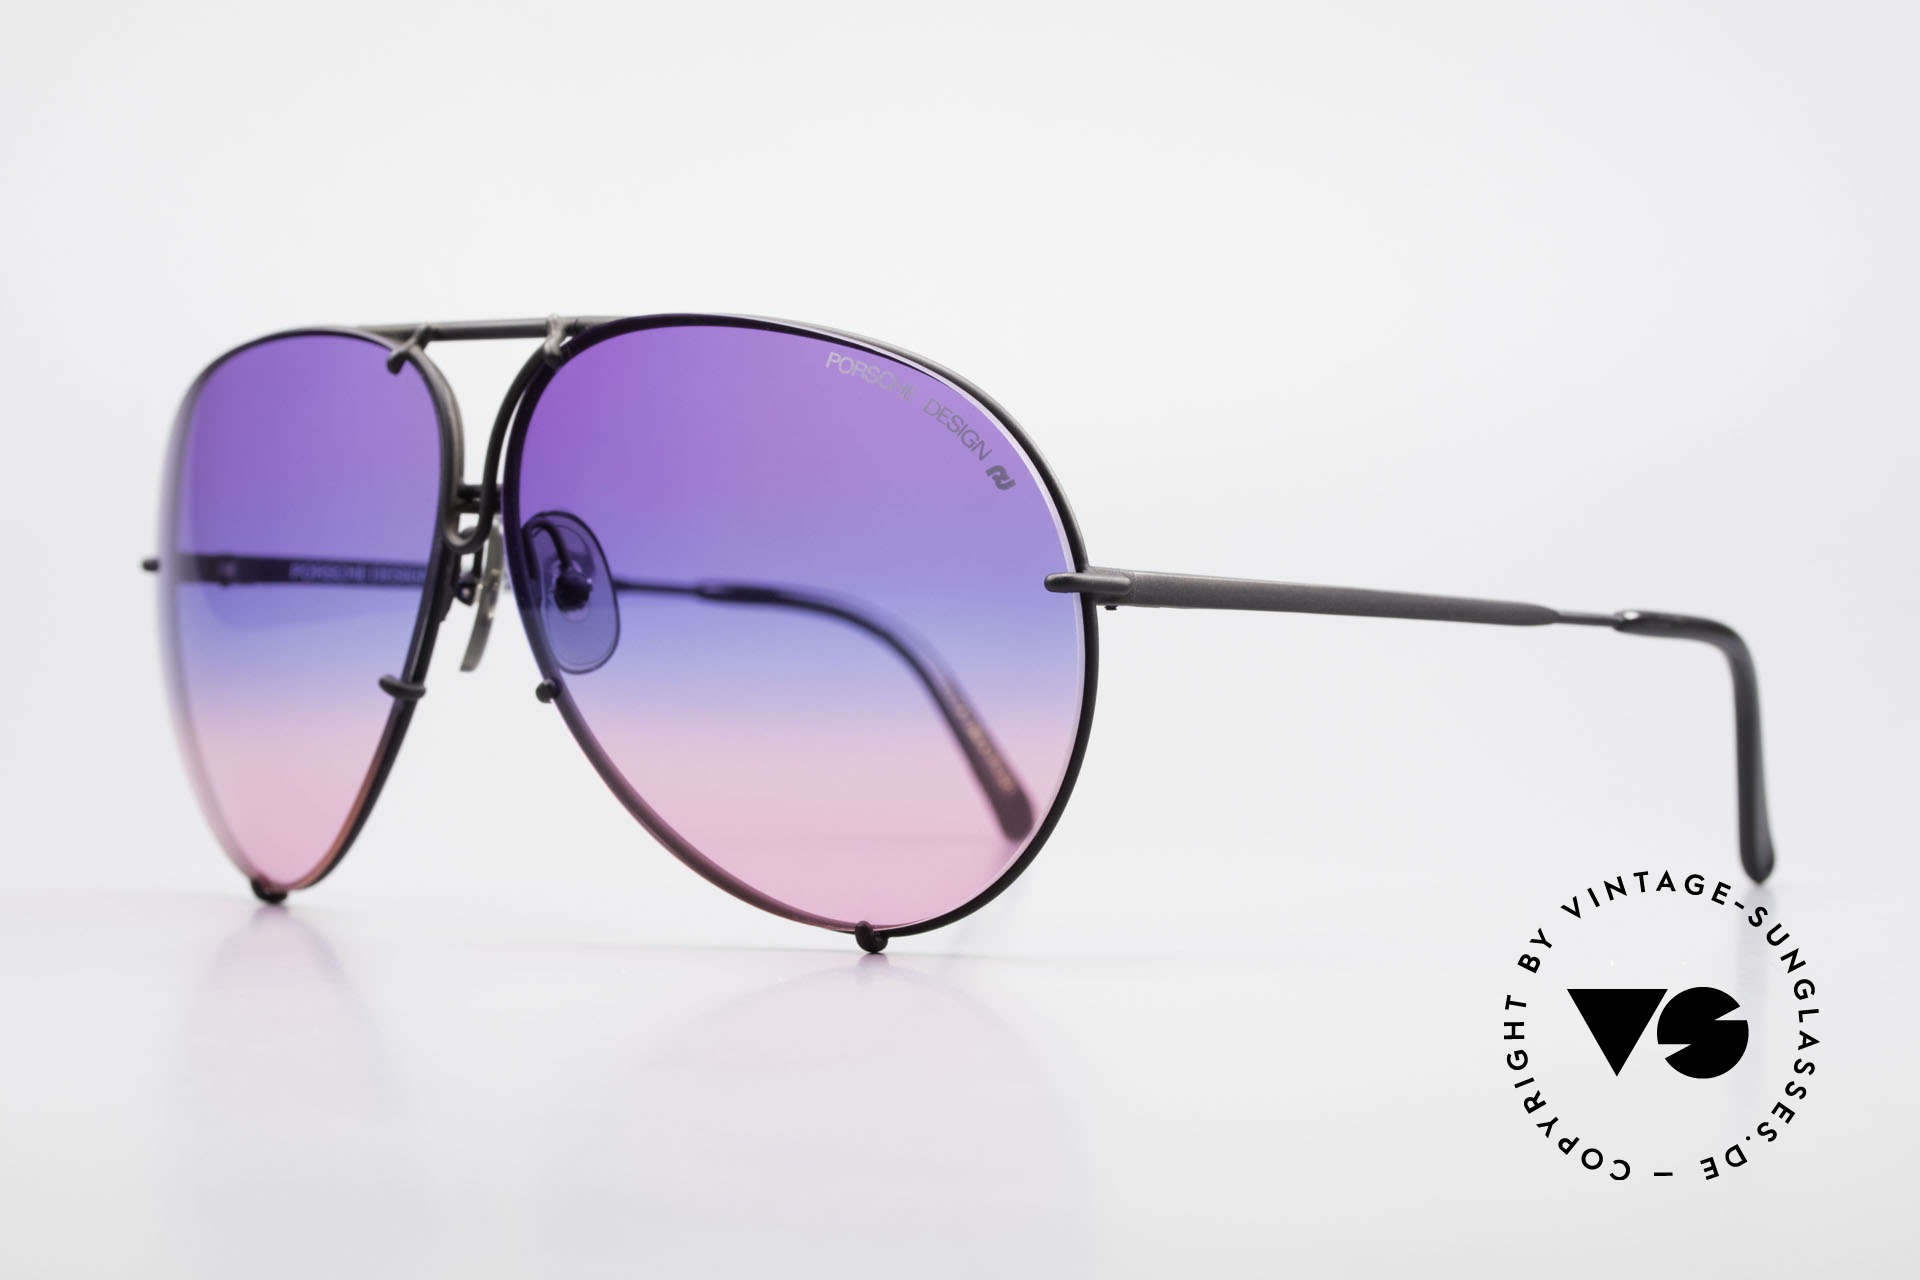 Porsche 5621 Tricolor Limited Edition 80's, LIMITED edition with tricolored gradient sun lenses, Made for Men